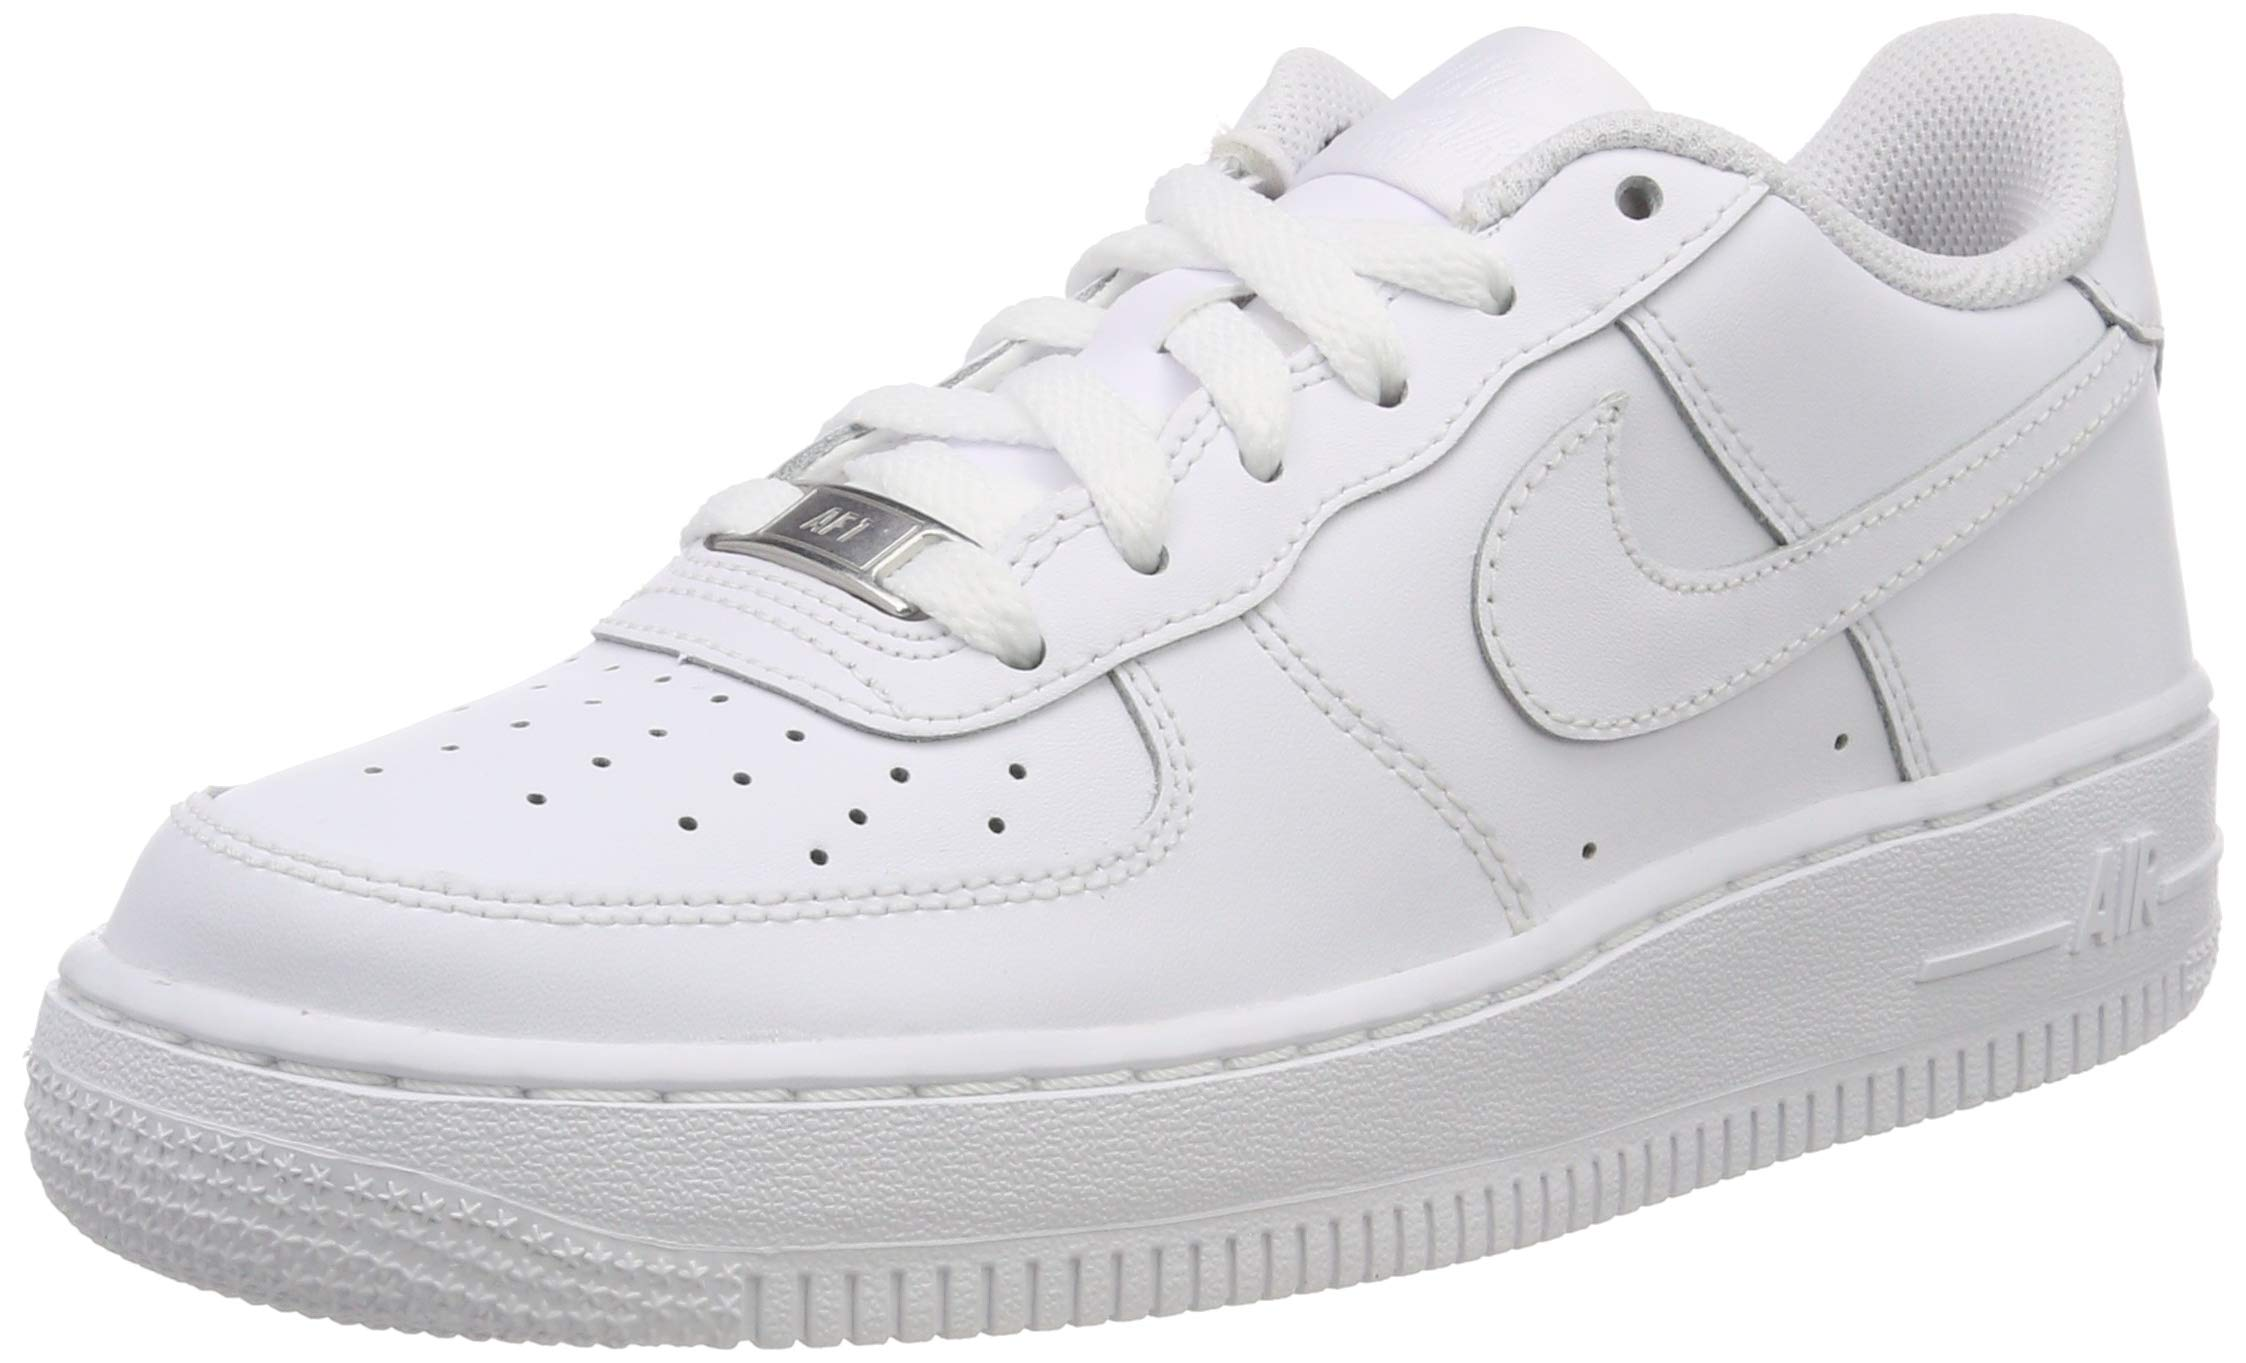 Nike Kids Air Force 1 (GS) White/White/White Basketball Shoe 6.5 Kids US, 6.5 Big Kid